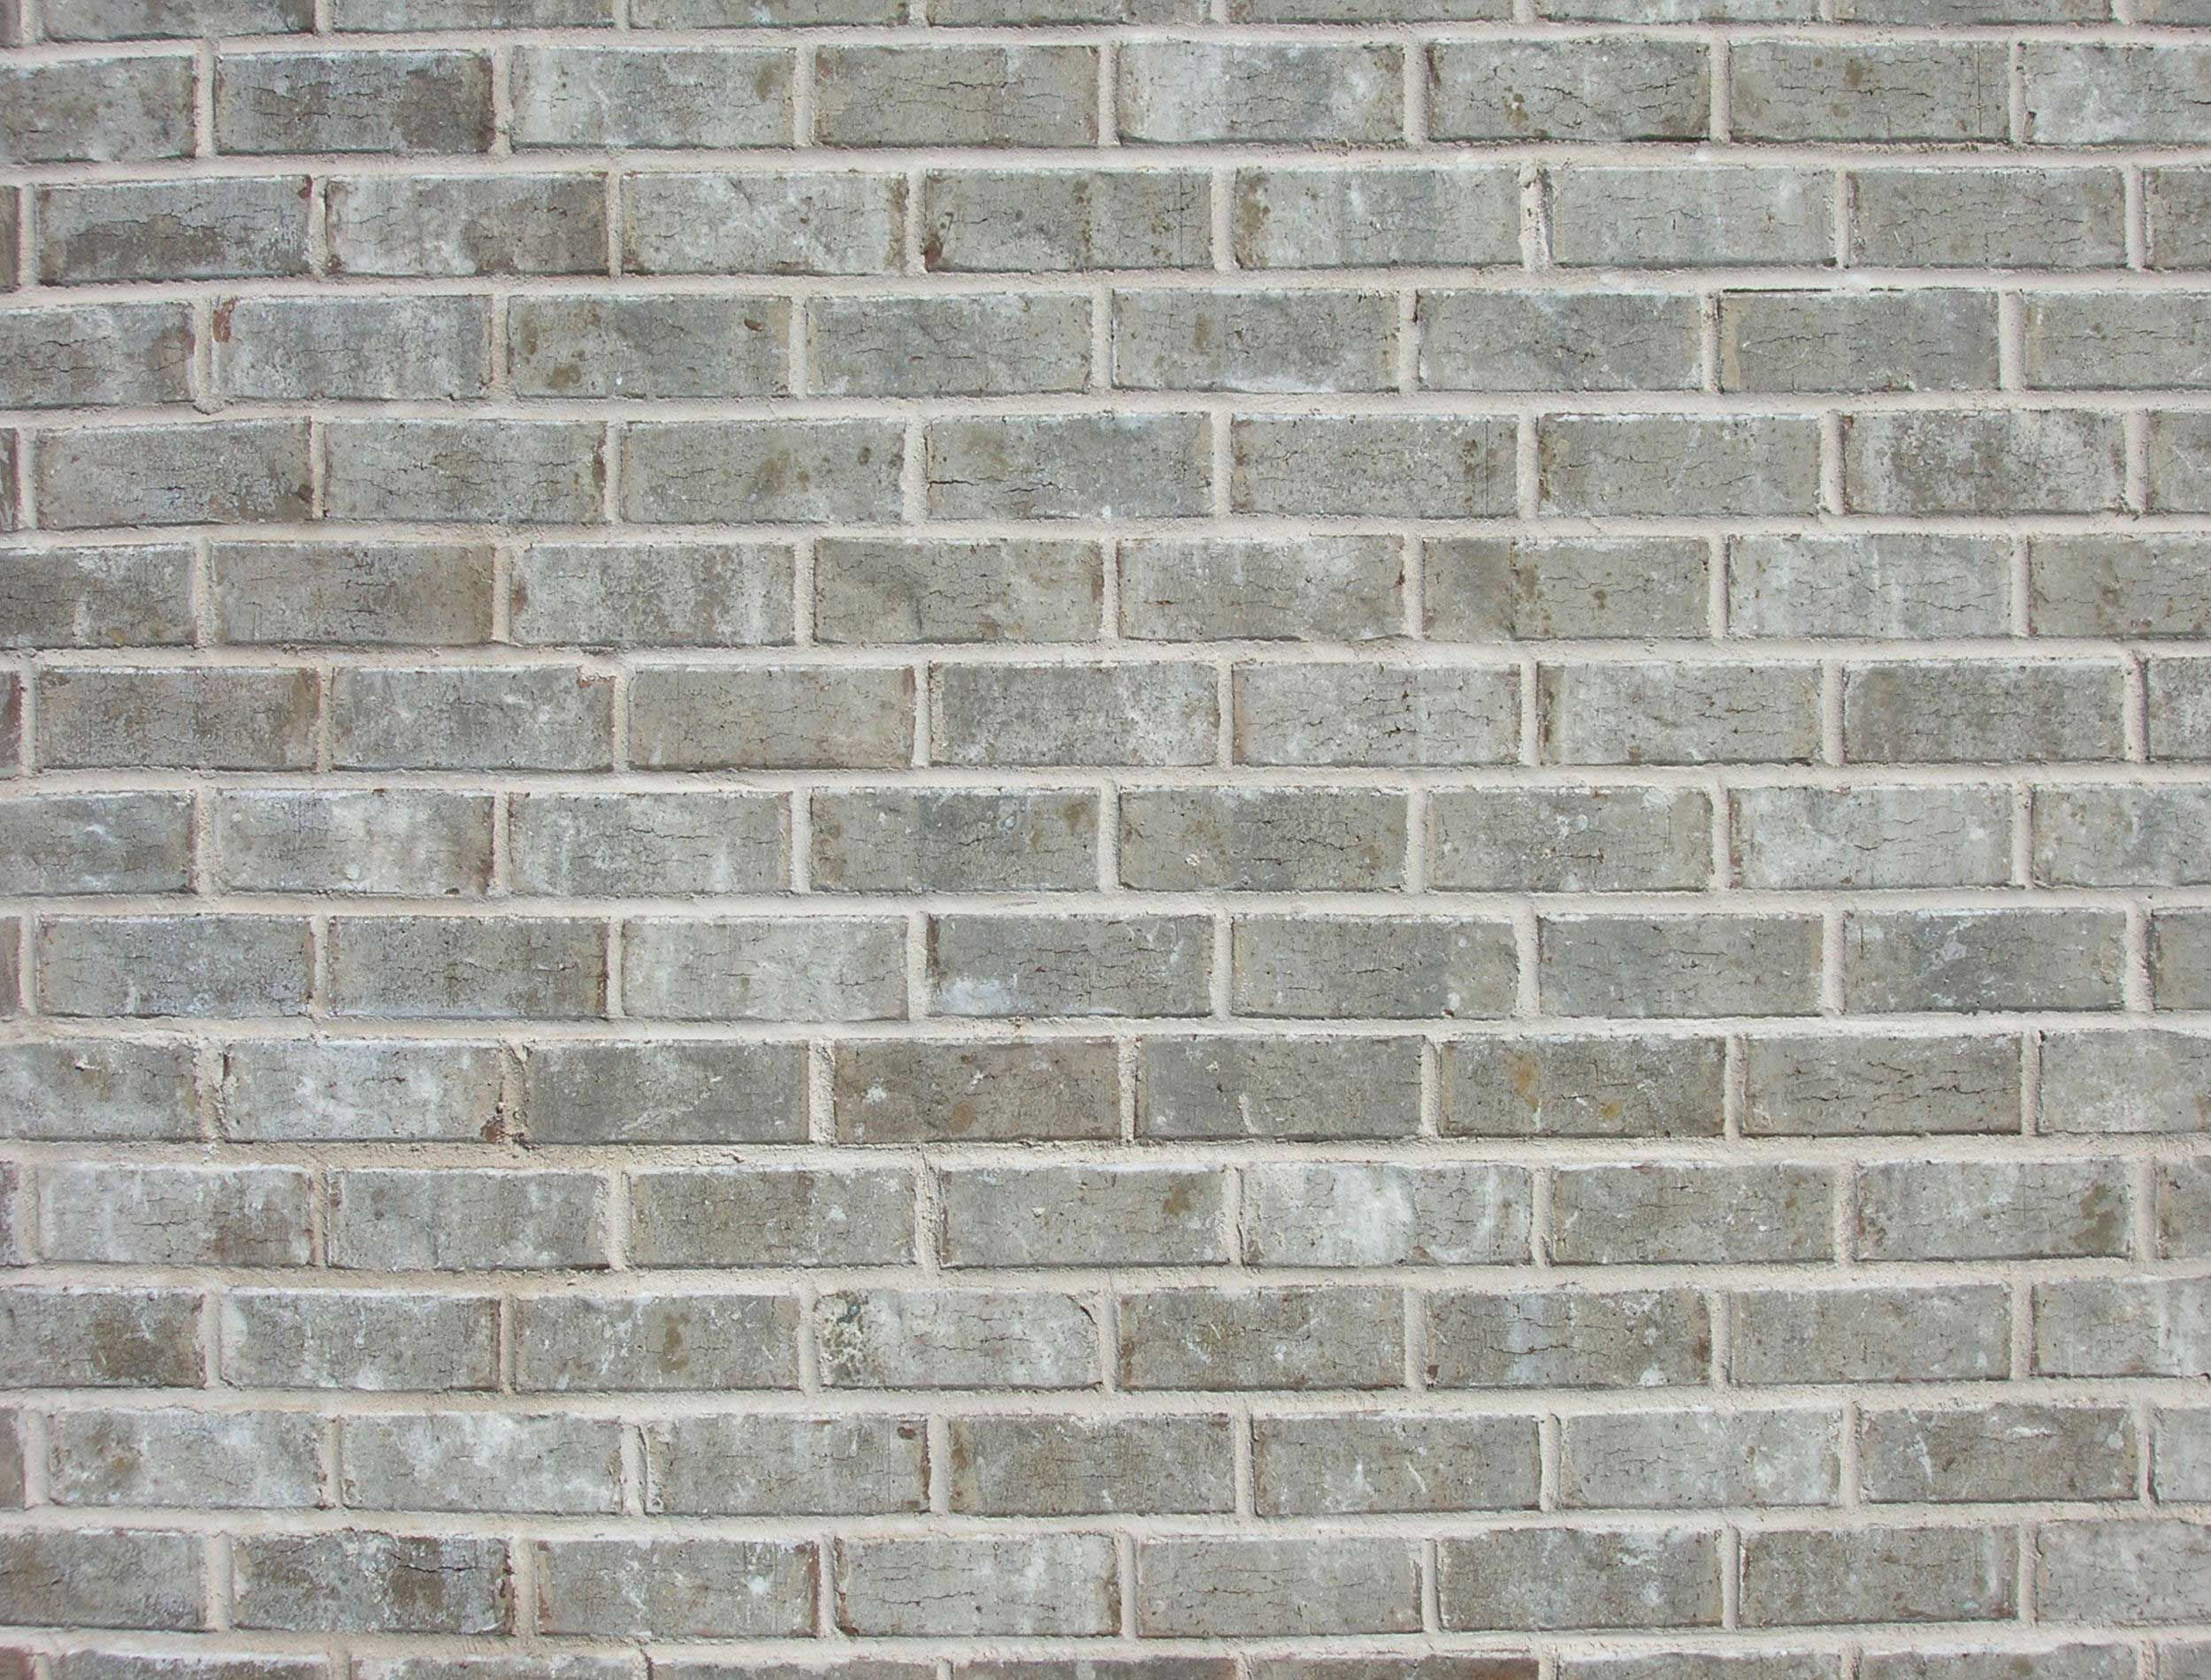 Gray brick facade images galleries for Modern brick veneer